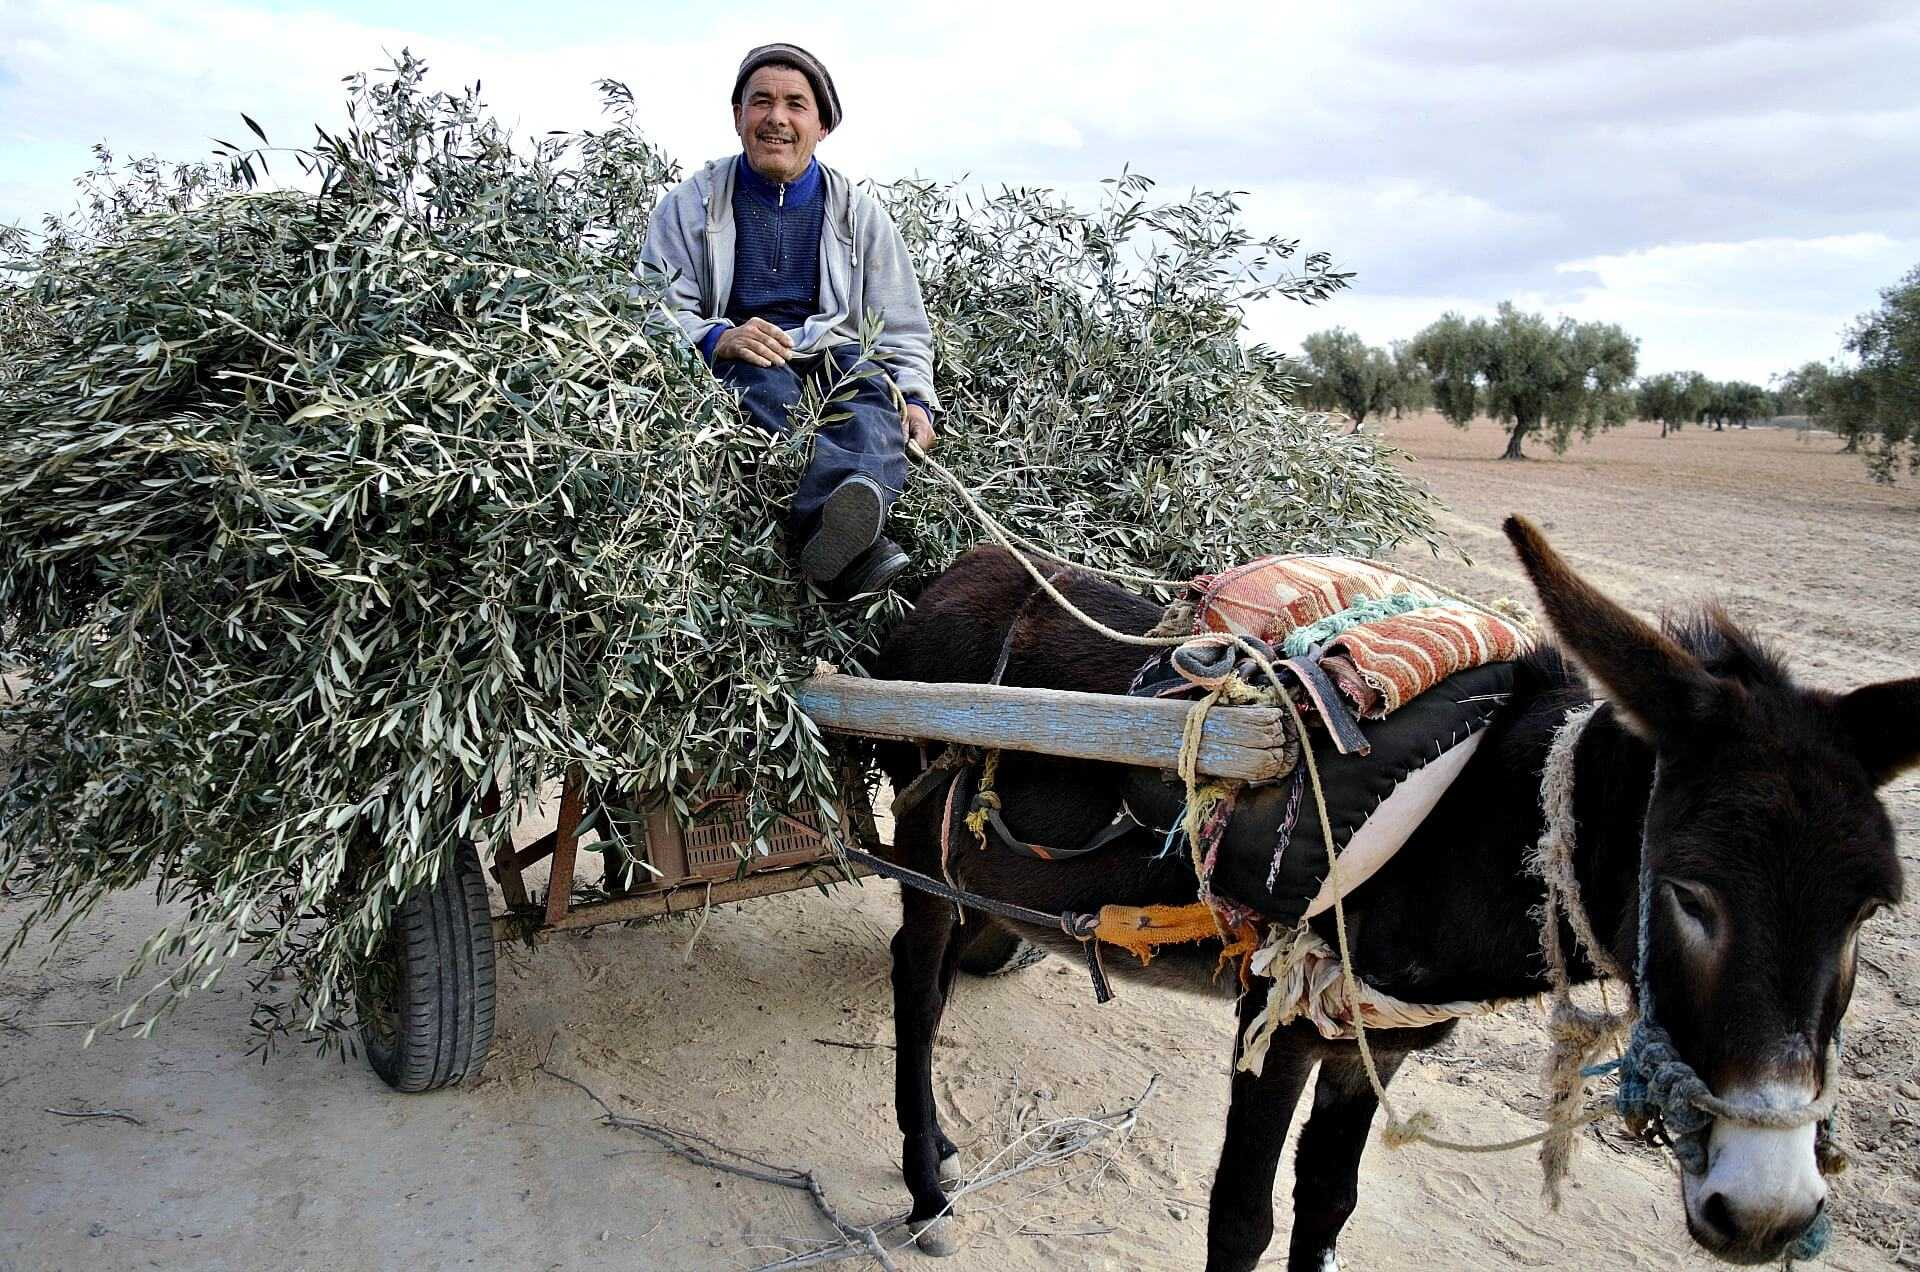 tunisia-land-of-the-olive-tree